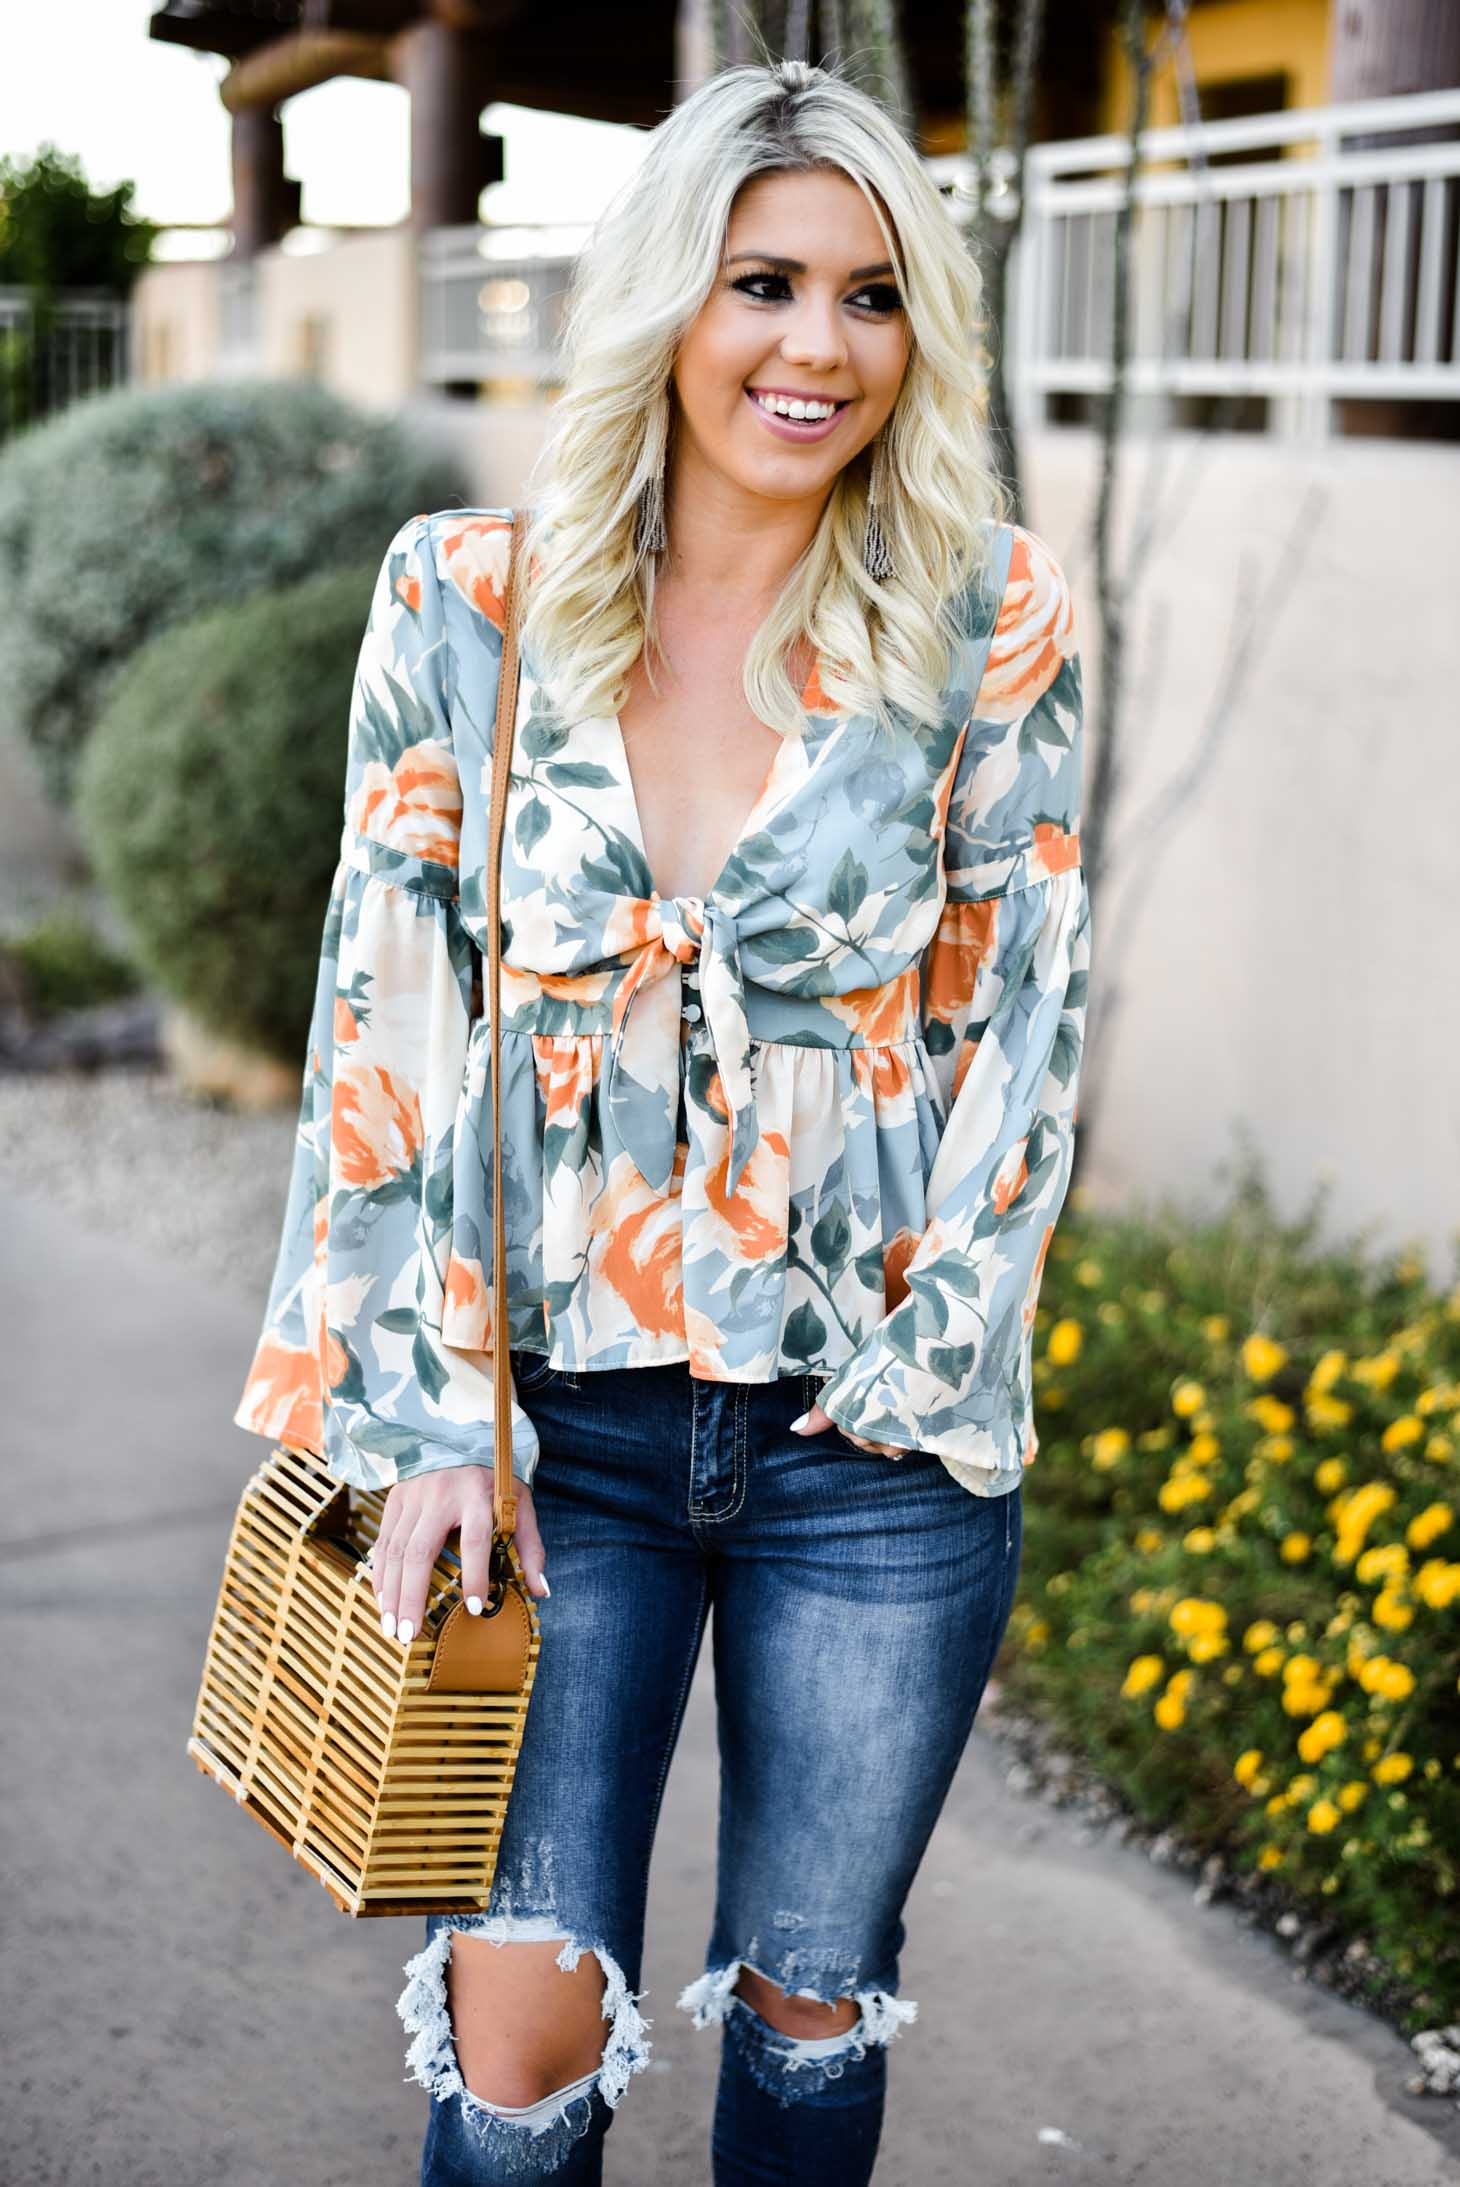 Erin Elizabeth of Wink and a Twirl in this Vici Dolls Jeans and Summer Floral Top